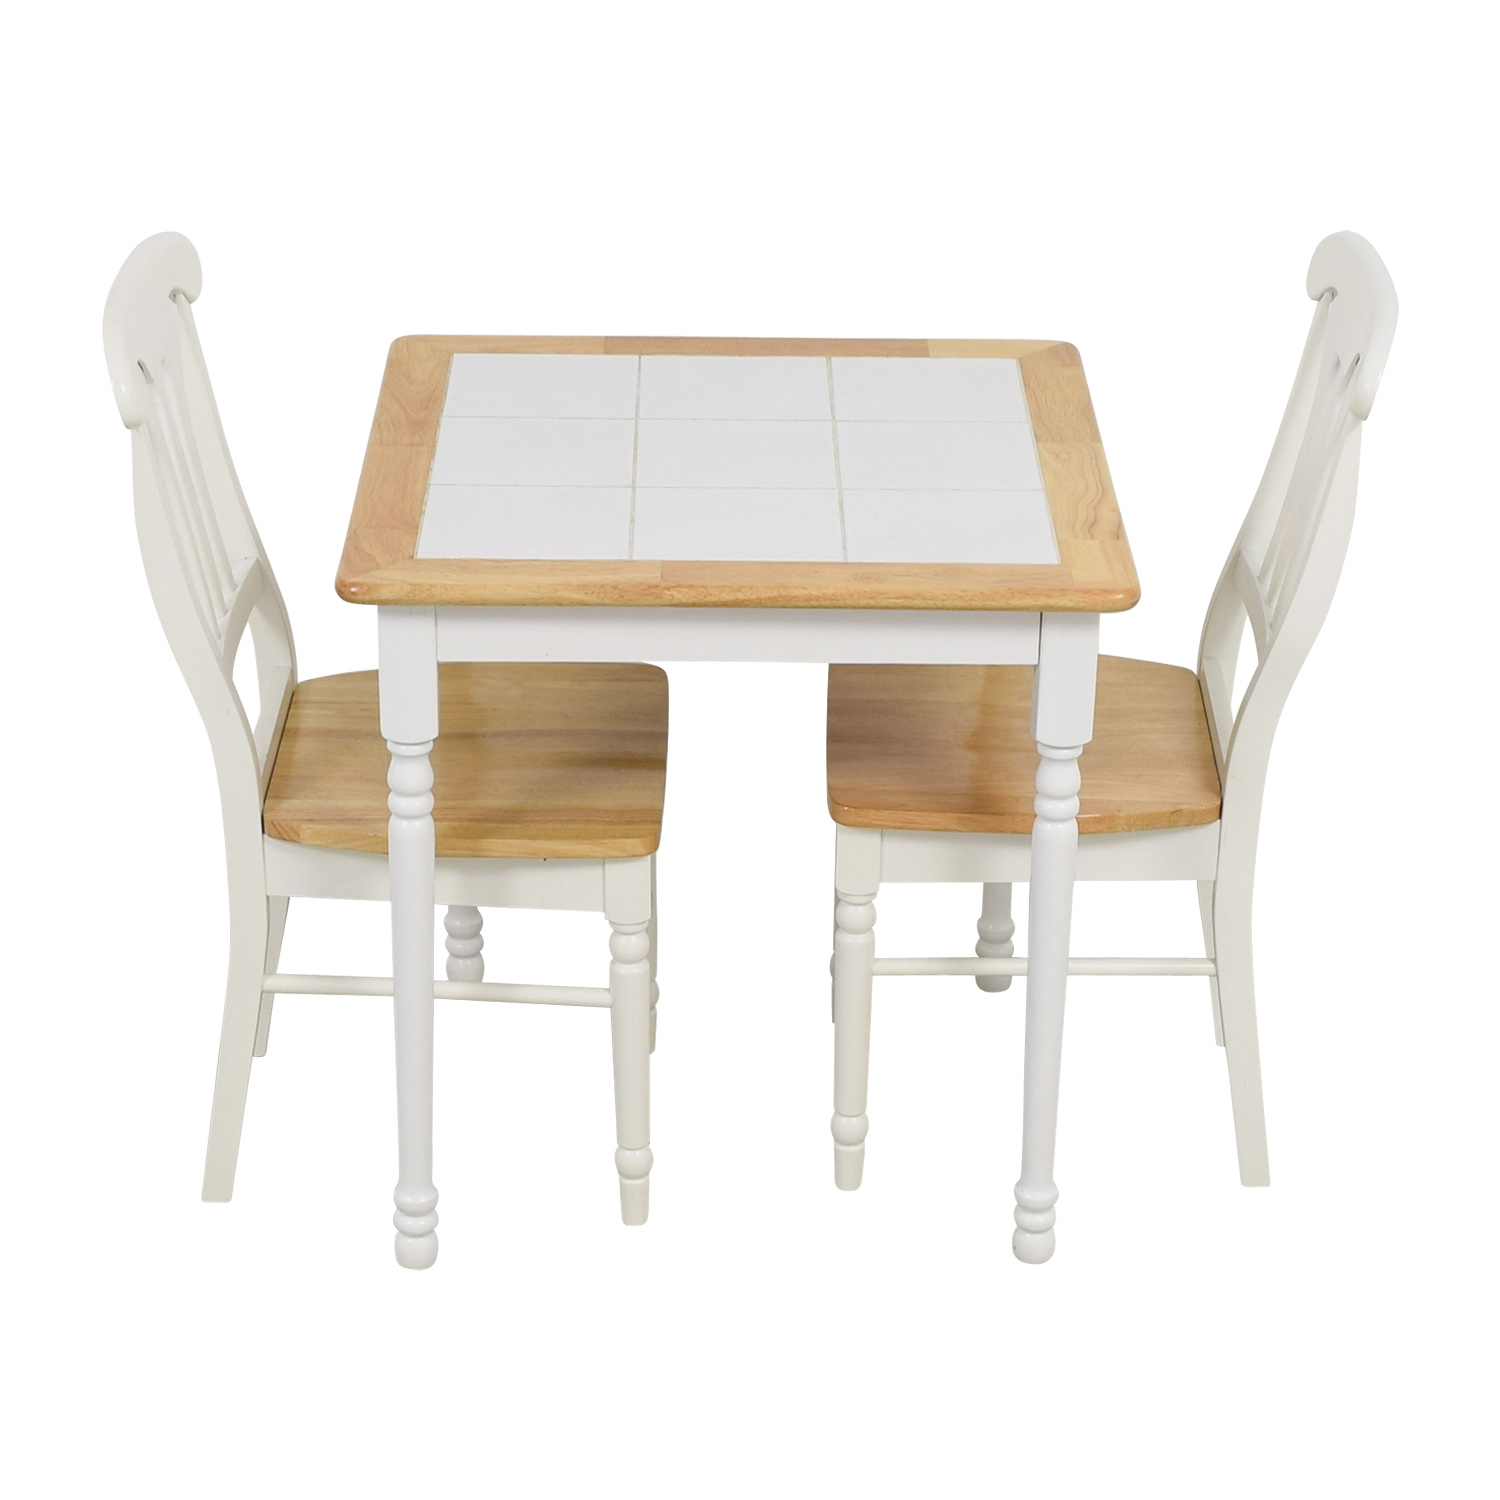 shop Coaster Coaster White Tile Dining Set online